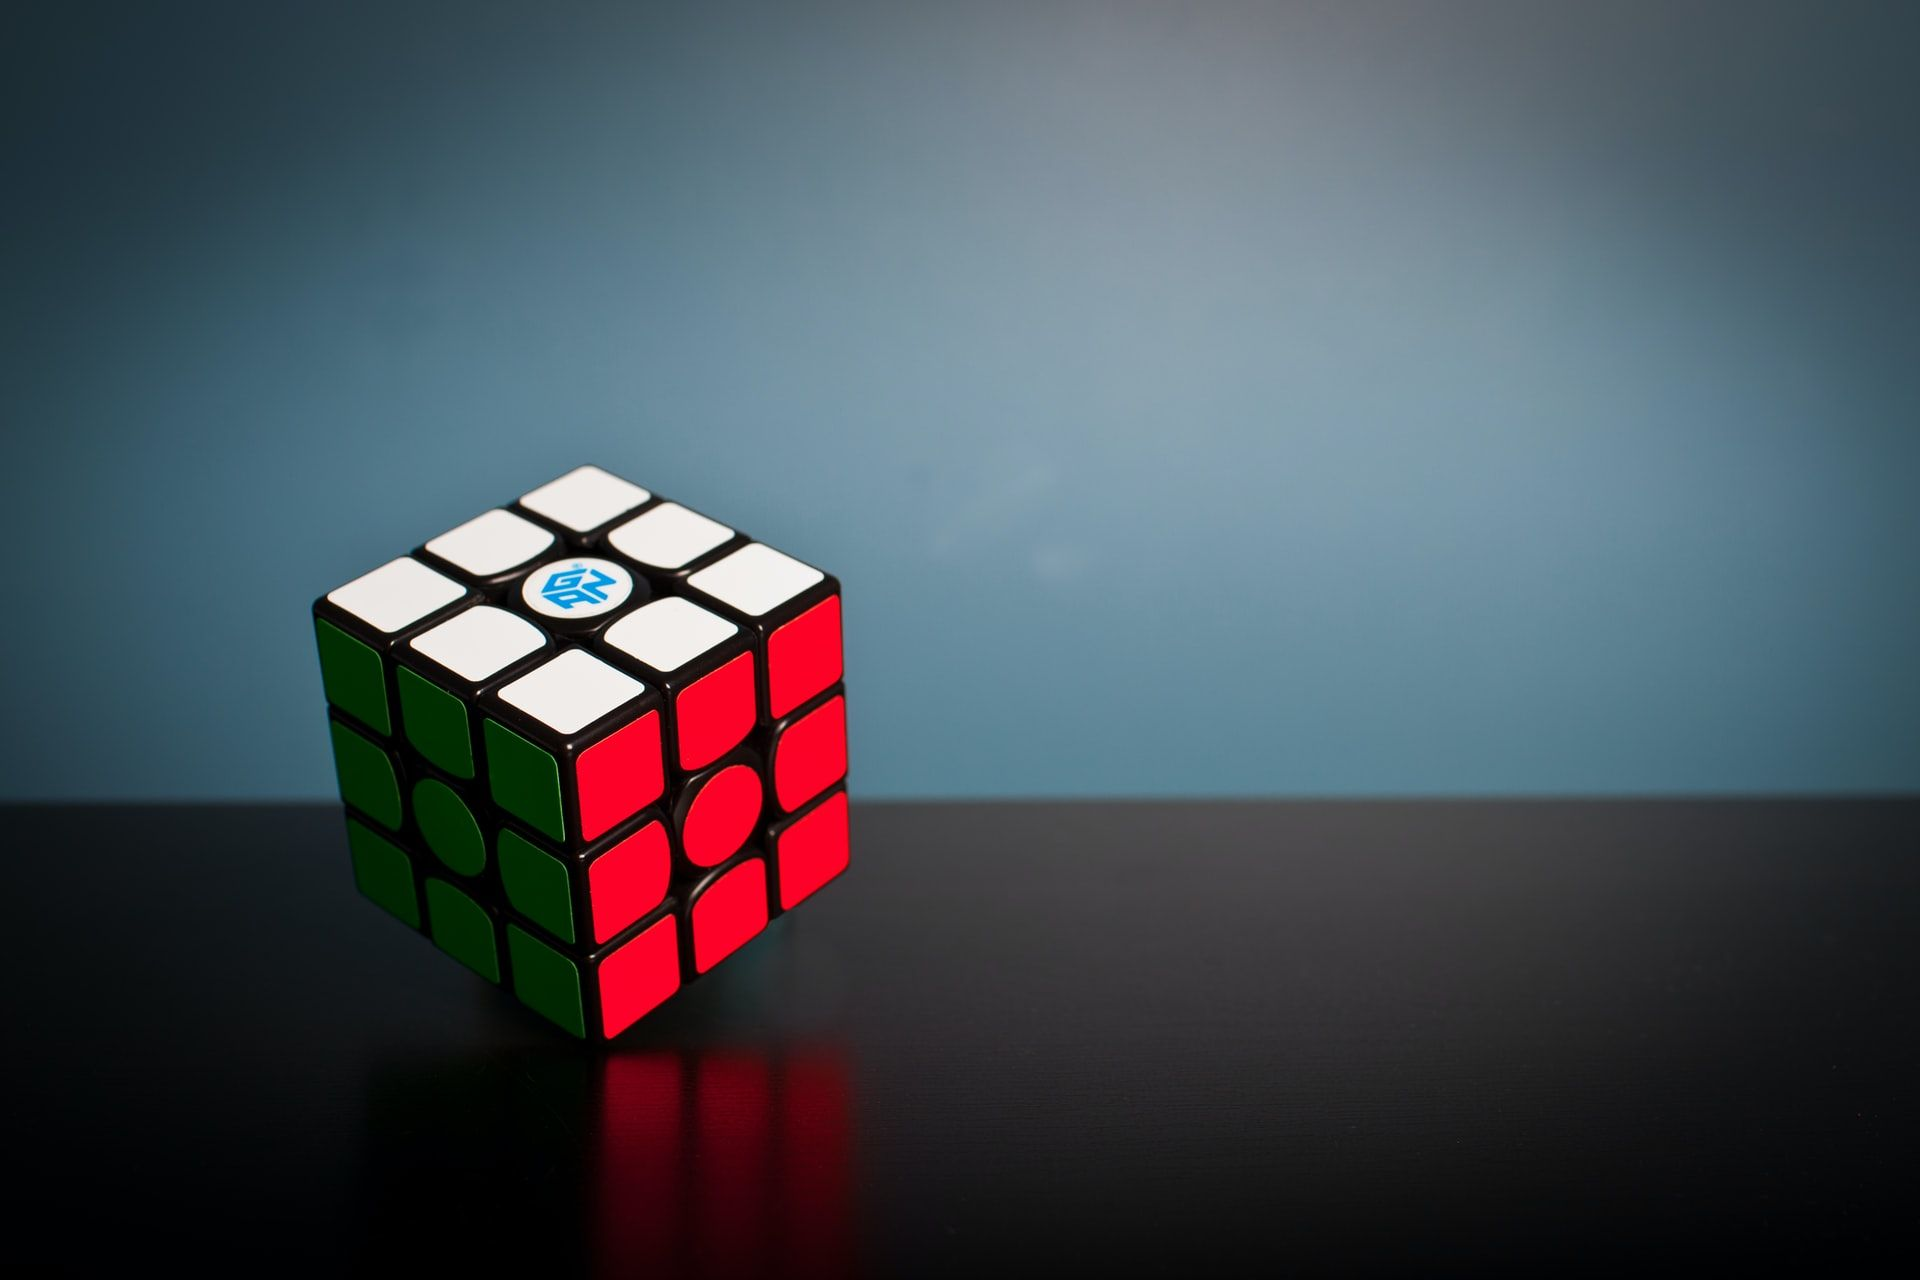 Rubiks cube solved learning and development